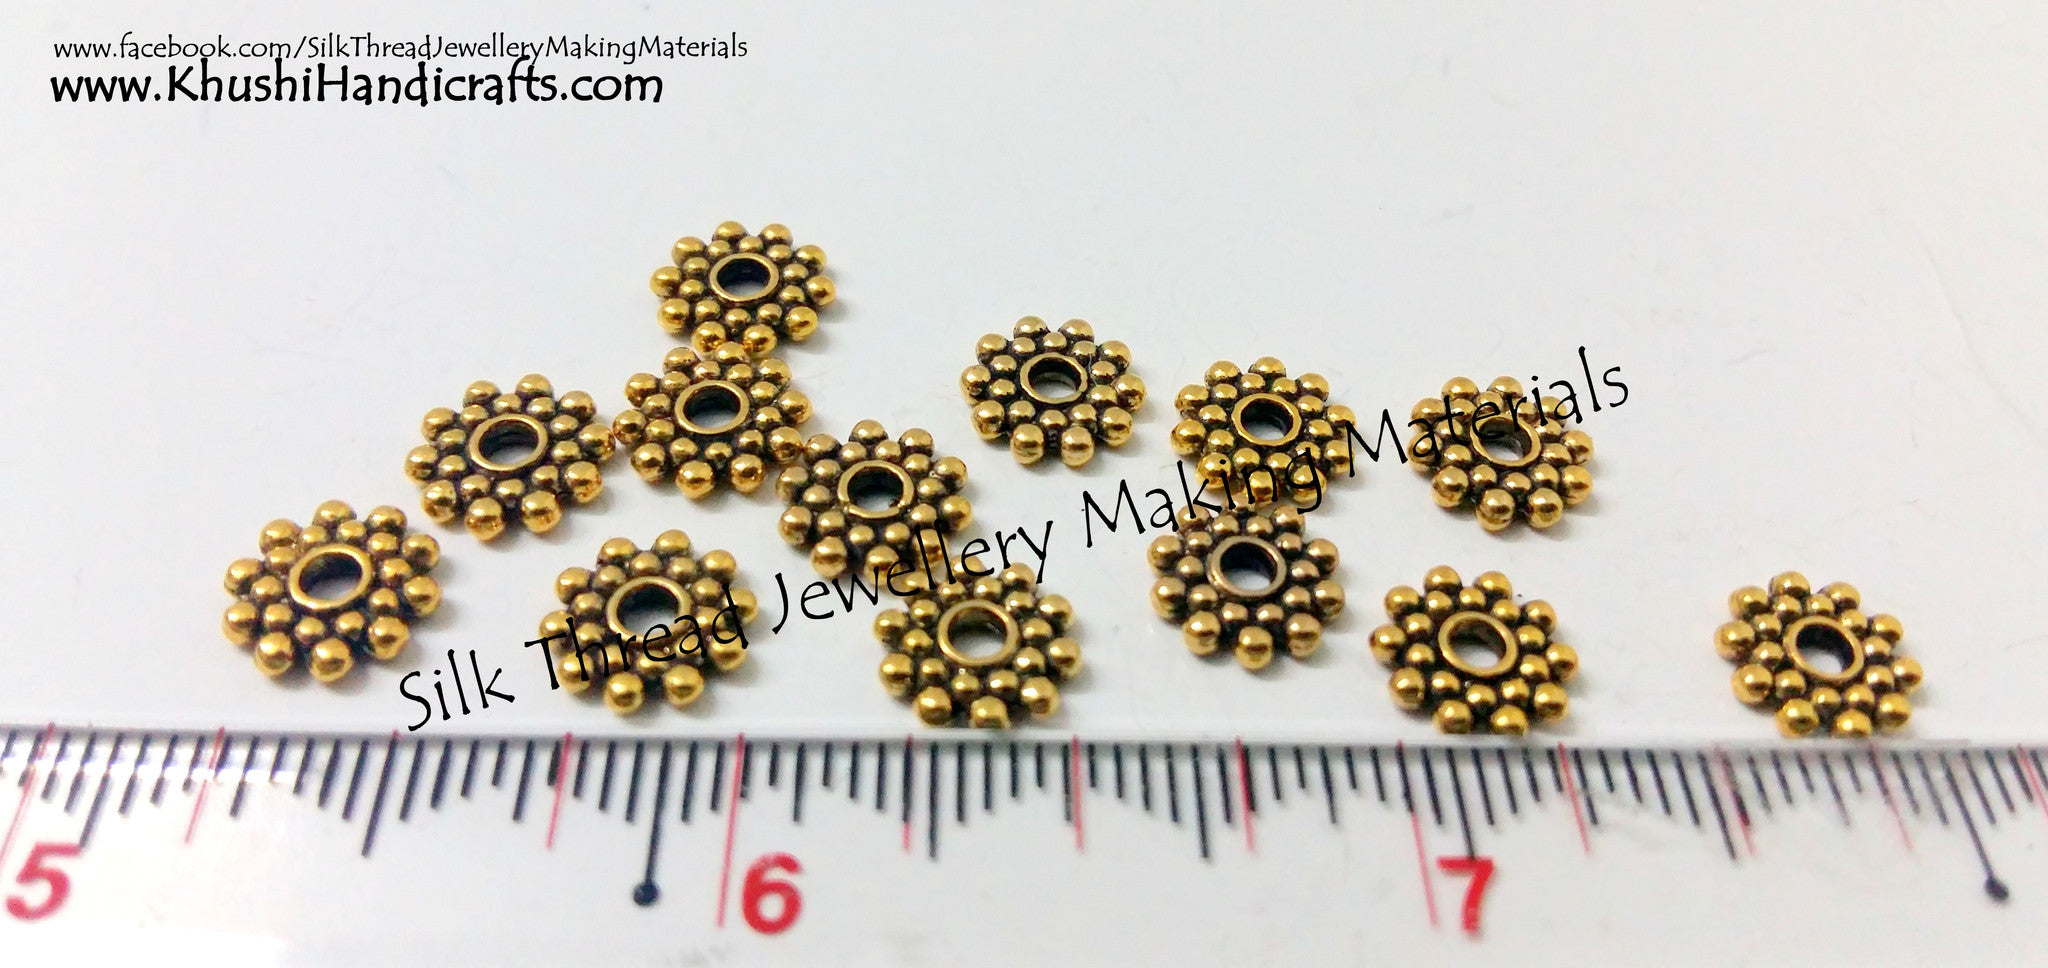 Metal Flower /Snowflake spacer beads in Antique Gold and Silver - Khushi Handmade Jewellery